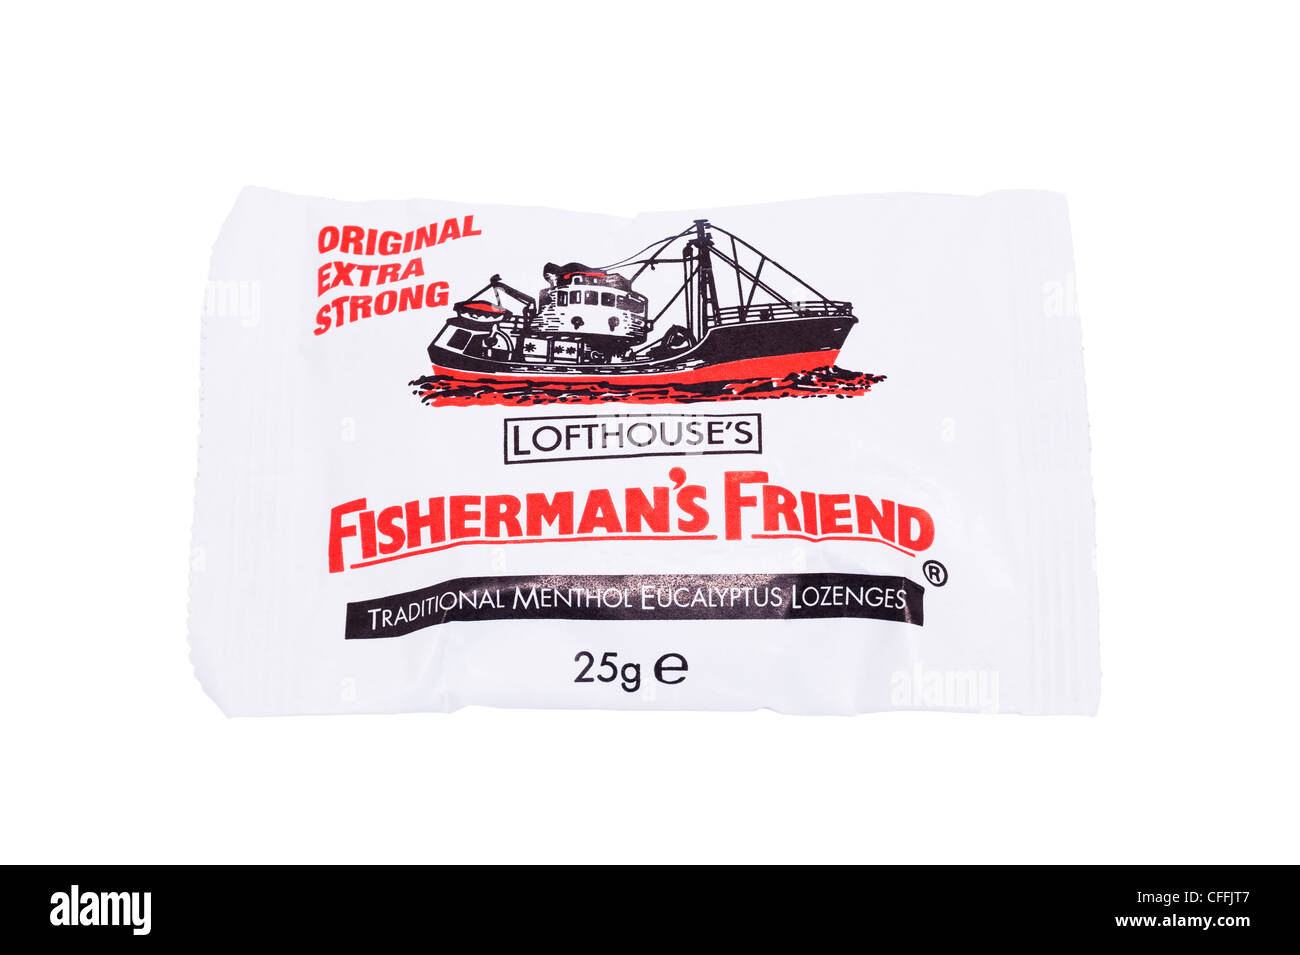 A pack of Lofthouse's Original Extra Strong Fisherman's Friend Lozenges on a white background - Stock Image